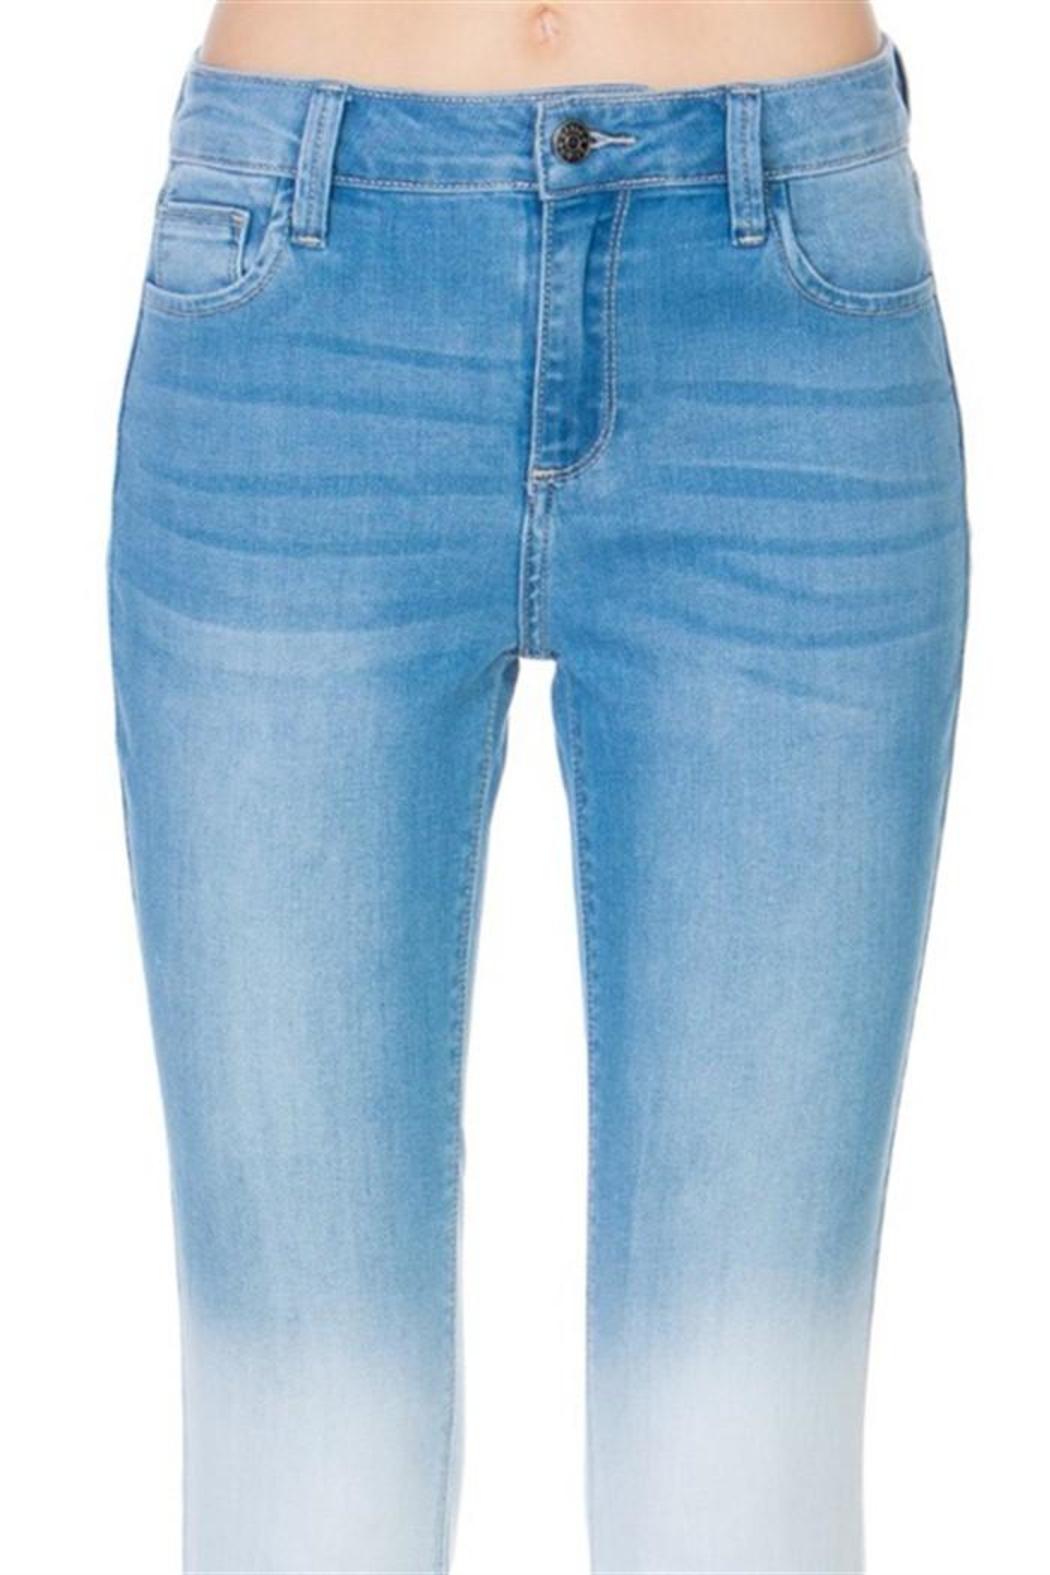 Cello Jeans Dip Dyed Jeans - Side Cropped Image